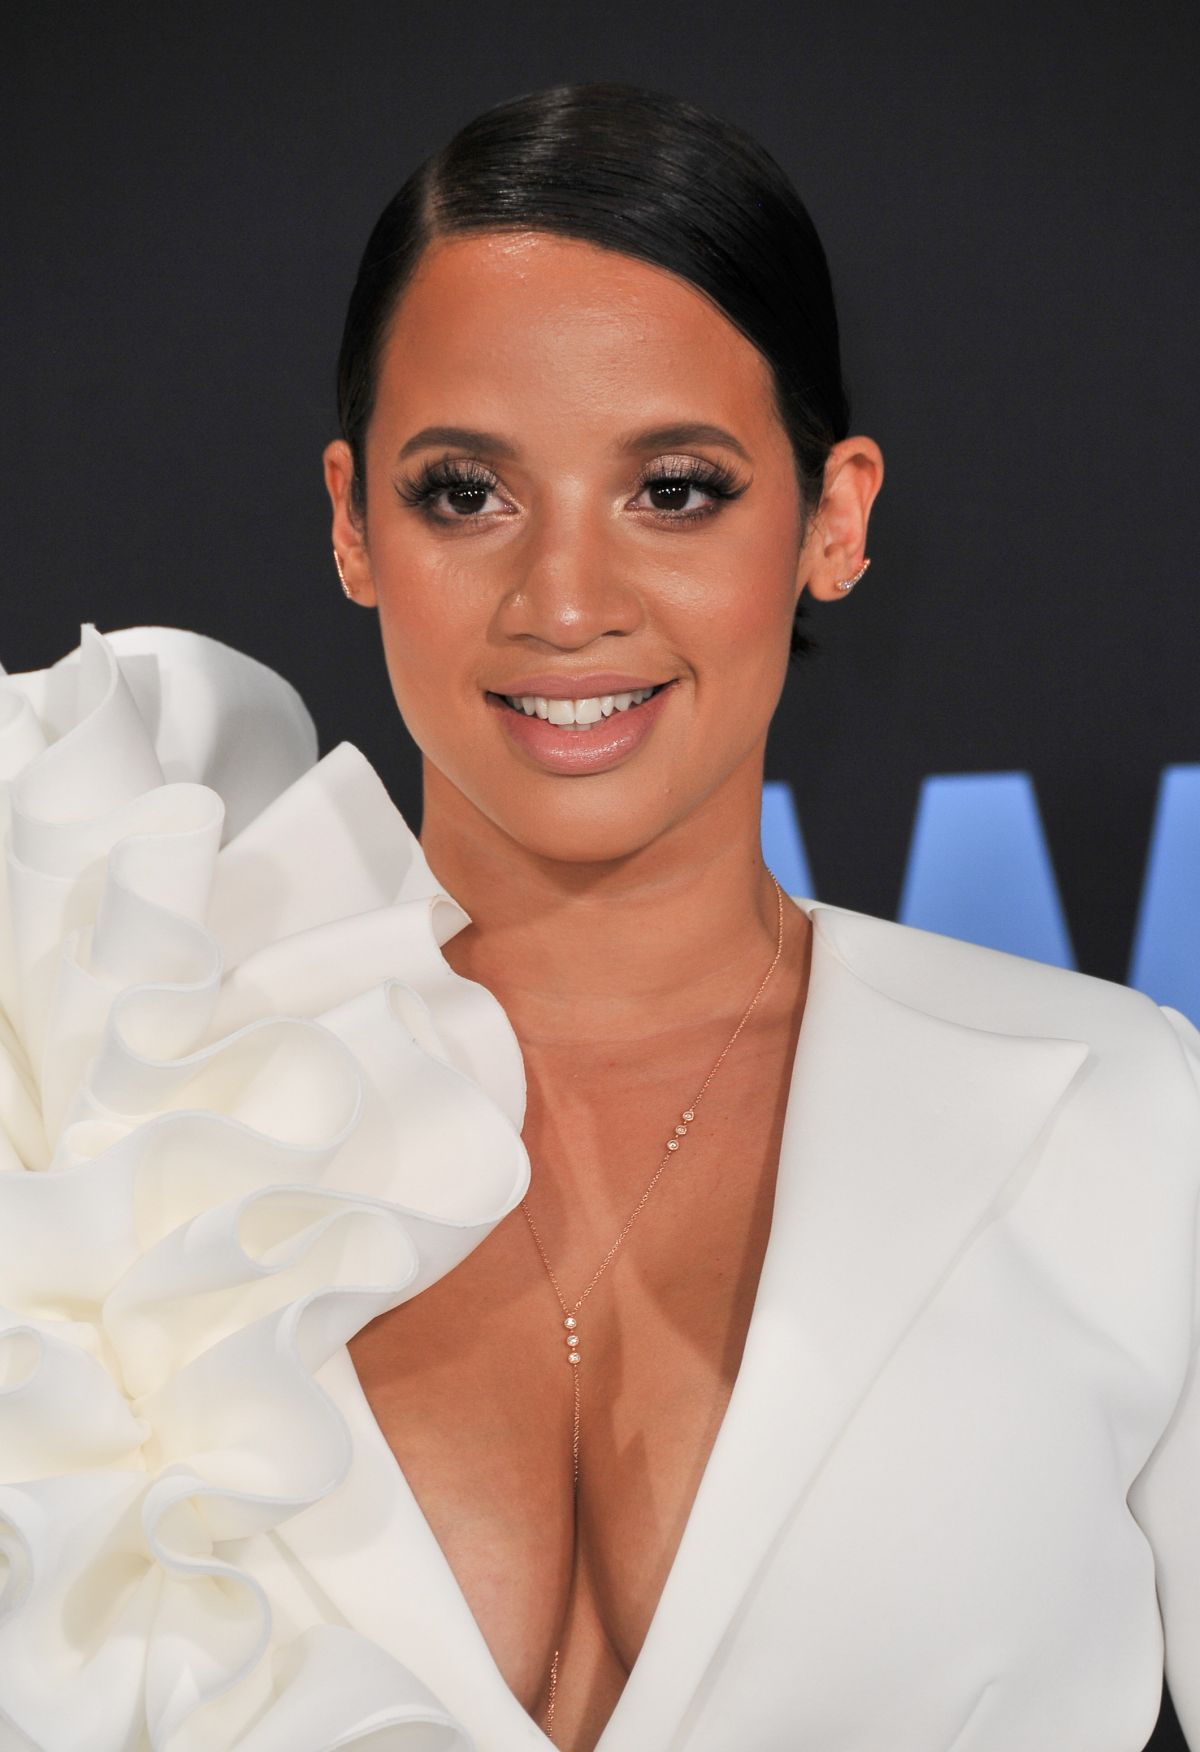 DASCHA POLANCO at BET Awards 2017 in Los Angeles 06/25/2017